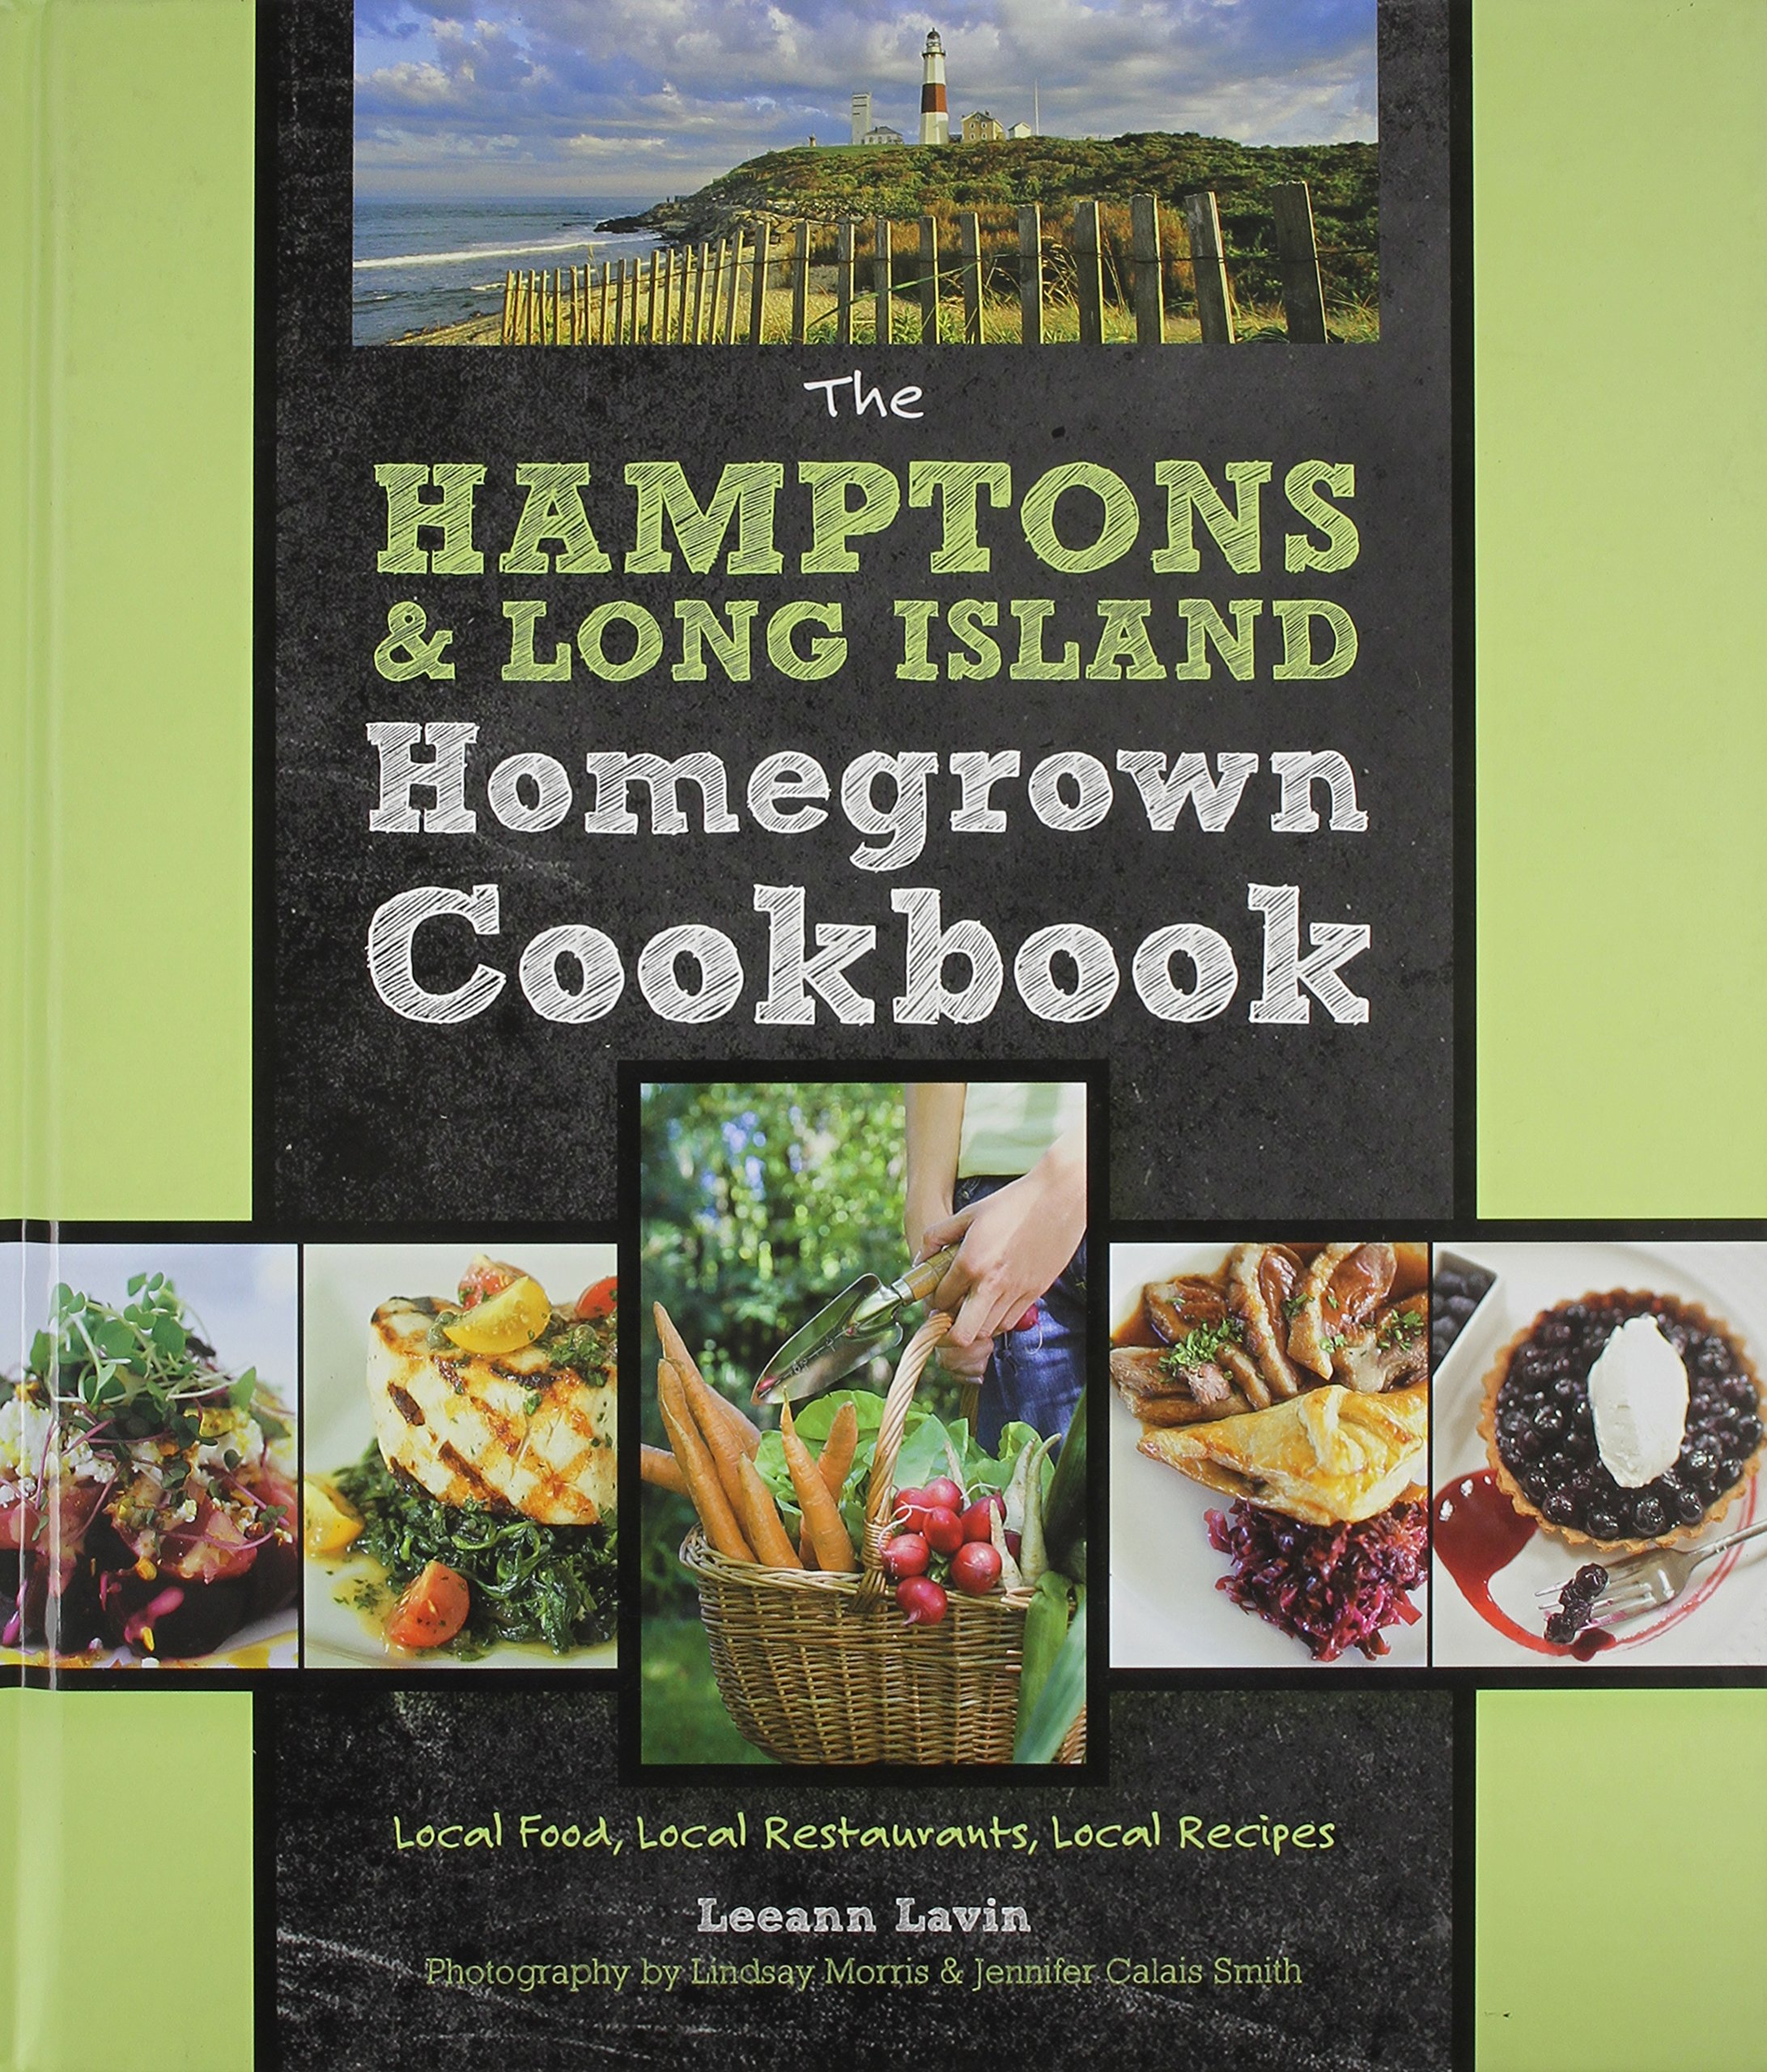 Surprising The Hamptons And Long Island Homegrown Cookbook Local Food Interior Design Ideas Clesiryabchikinfo